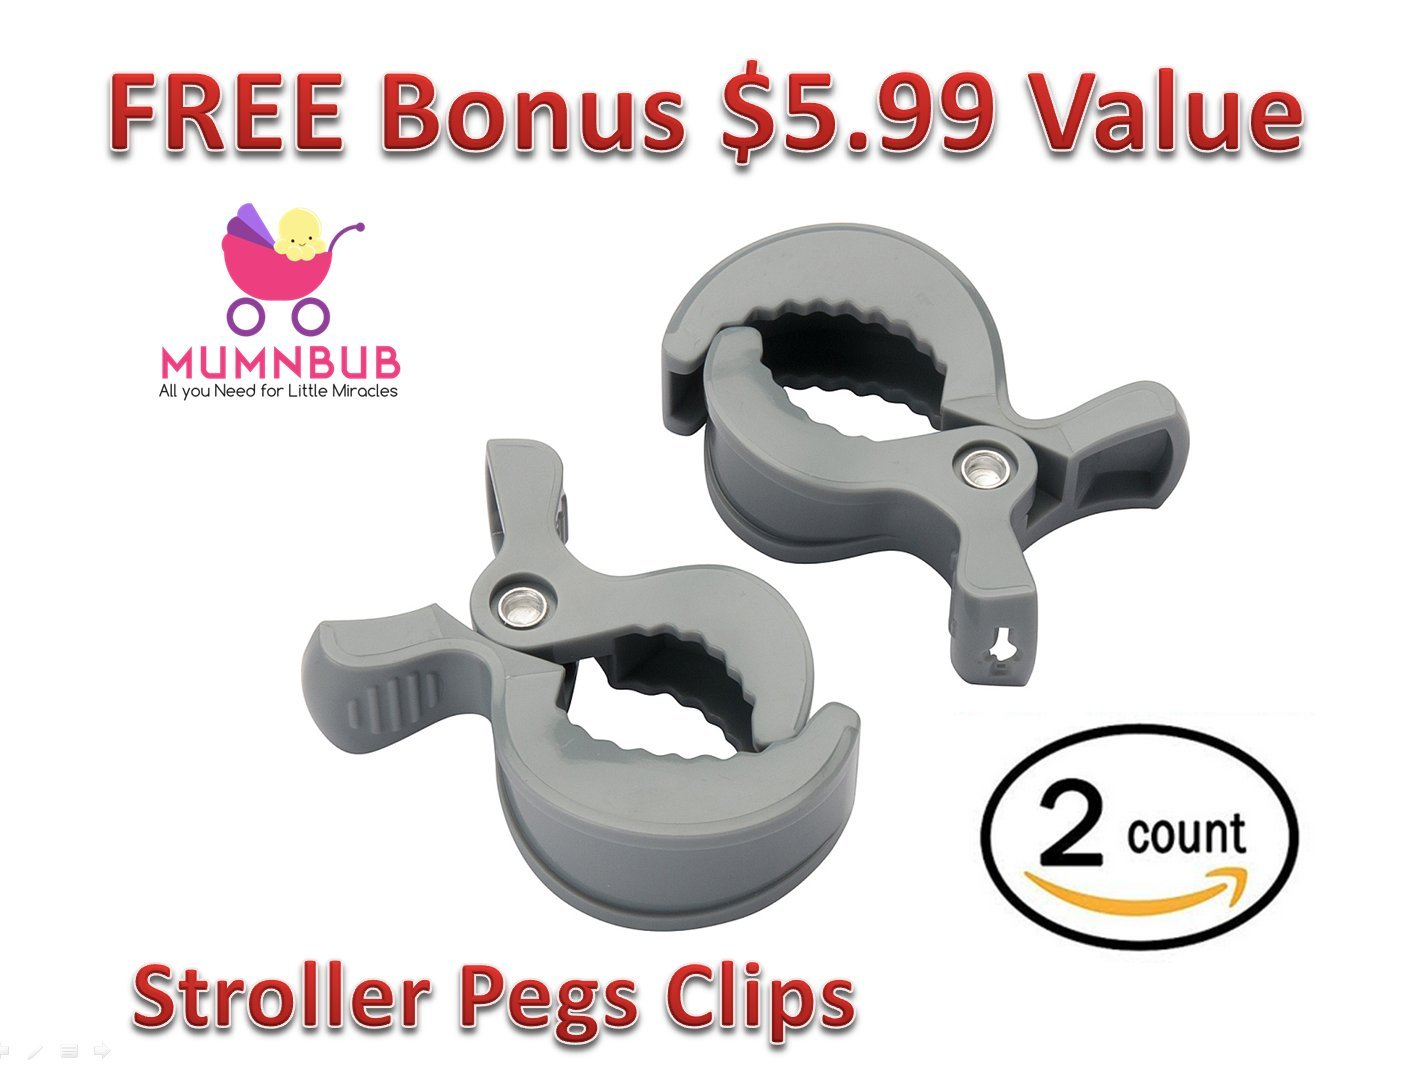 MumnBub Stroller Hook - 2 Pack (Grey) Multi-Purpose Heavy Duty Buggy Clips for Mommy - Universal Fit Perfect Pram Accessories for Hanging Diaper bag, Shopping bag, Groceries -Includes 2 Stroller Pegs by MumnBub (Image #3)